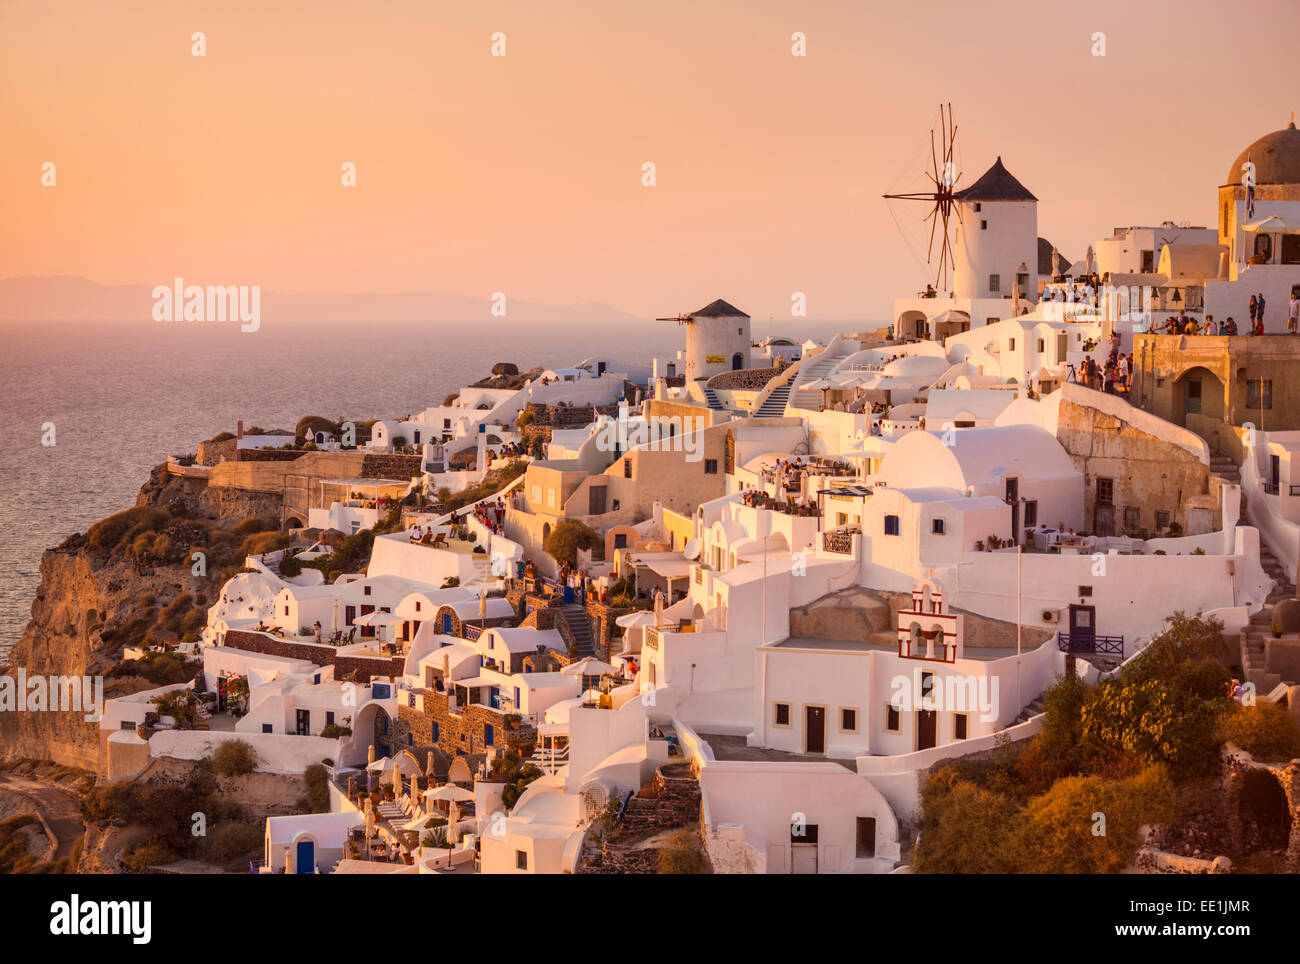 Windmill and traditional houses at sunset, Oia, Santorini (Thira), Cyclades Islands, Greek Islands, Greece, Europe Stock Photo